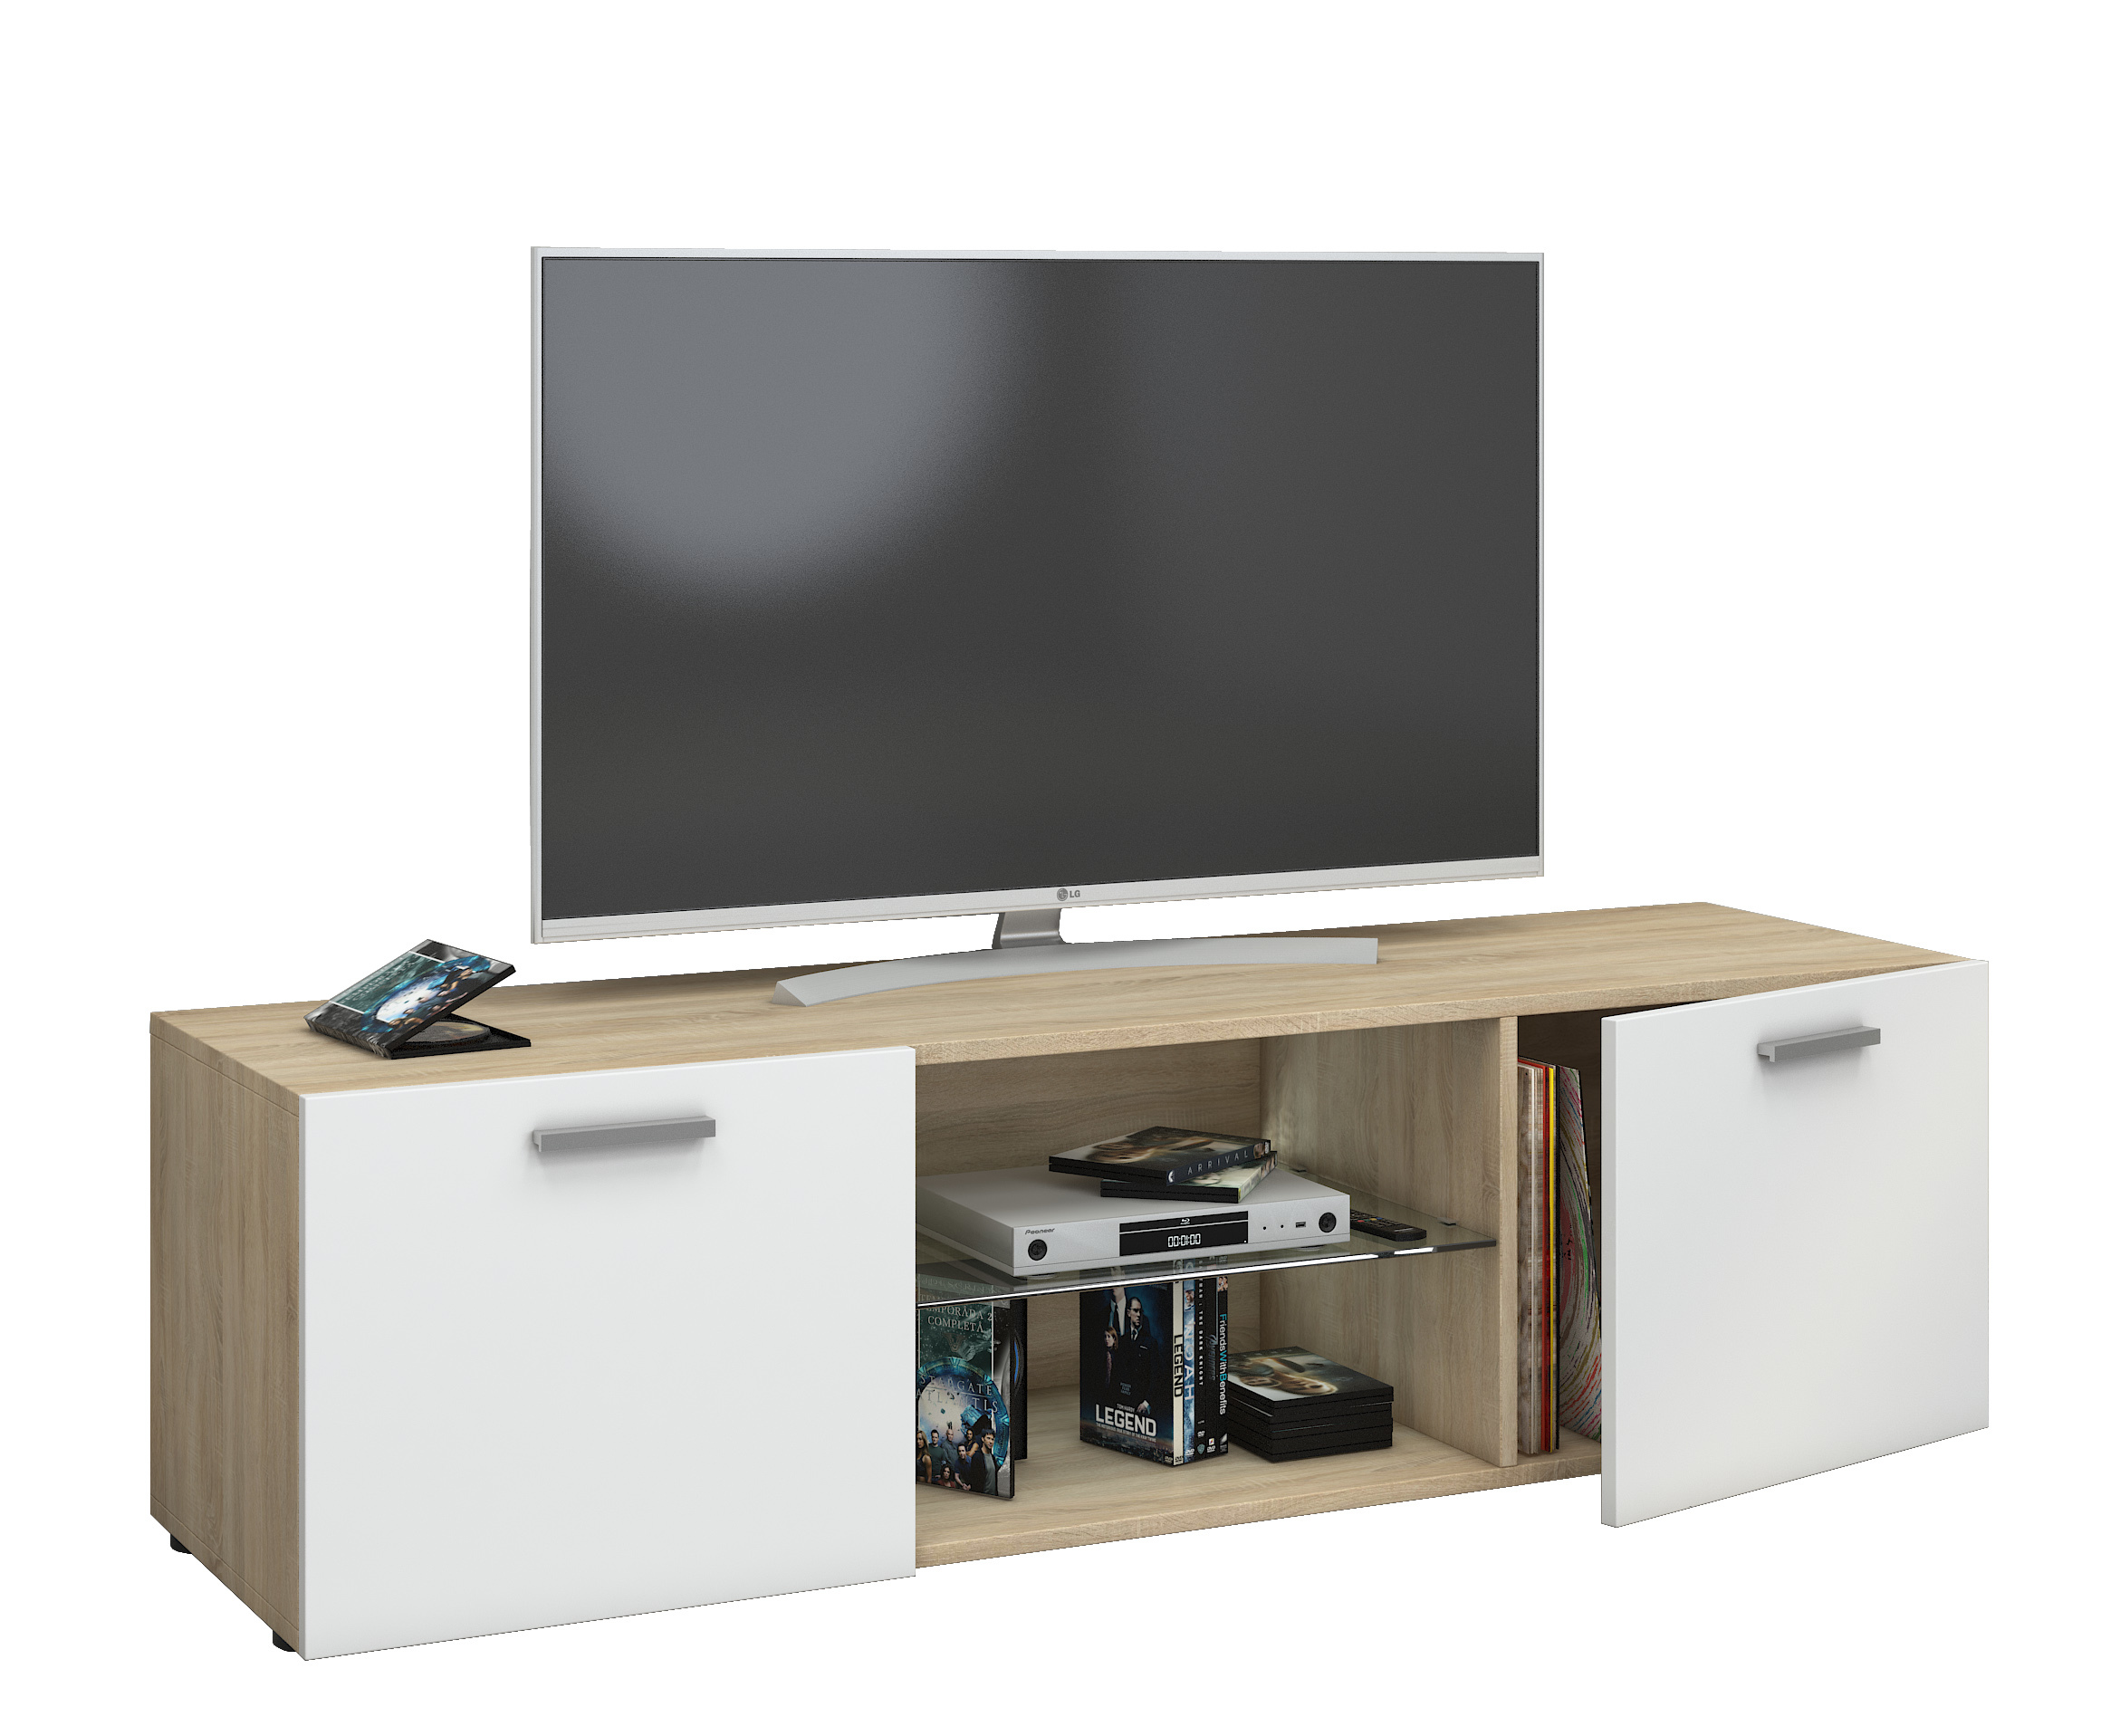 vcm gruppe vcm tv lowboard fernsehtisch schrank m bel. Black Bedroom Furniture Sets. Home Design Ideas